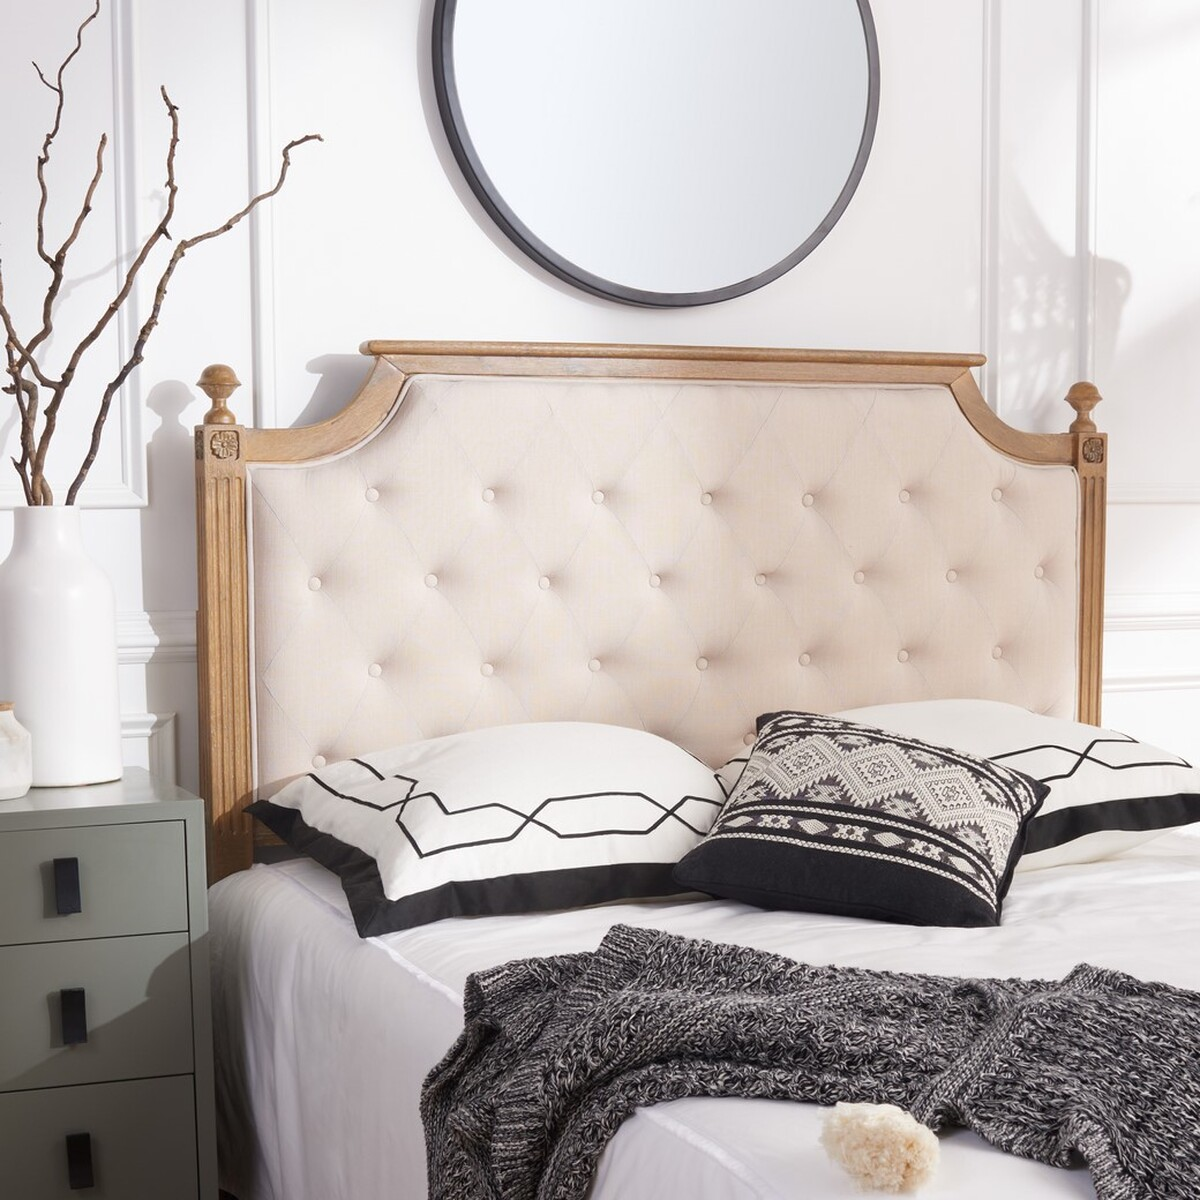 for ideas home nook wood wanted rustic own the wooden loves style headboard s little has decorate make a long img awaited she to where bed megans and her megan resides headboards